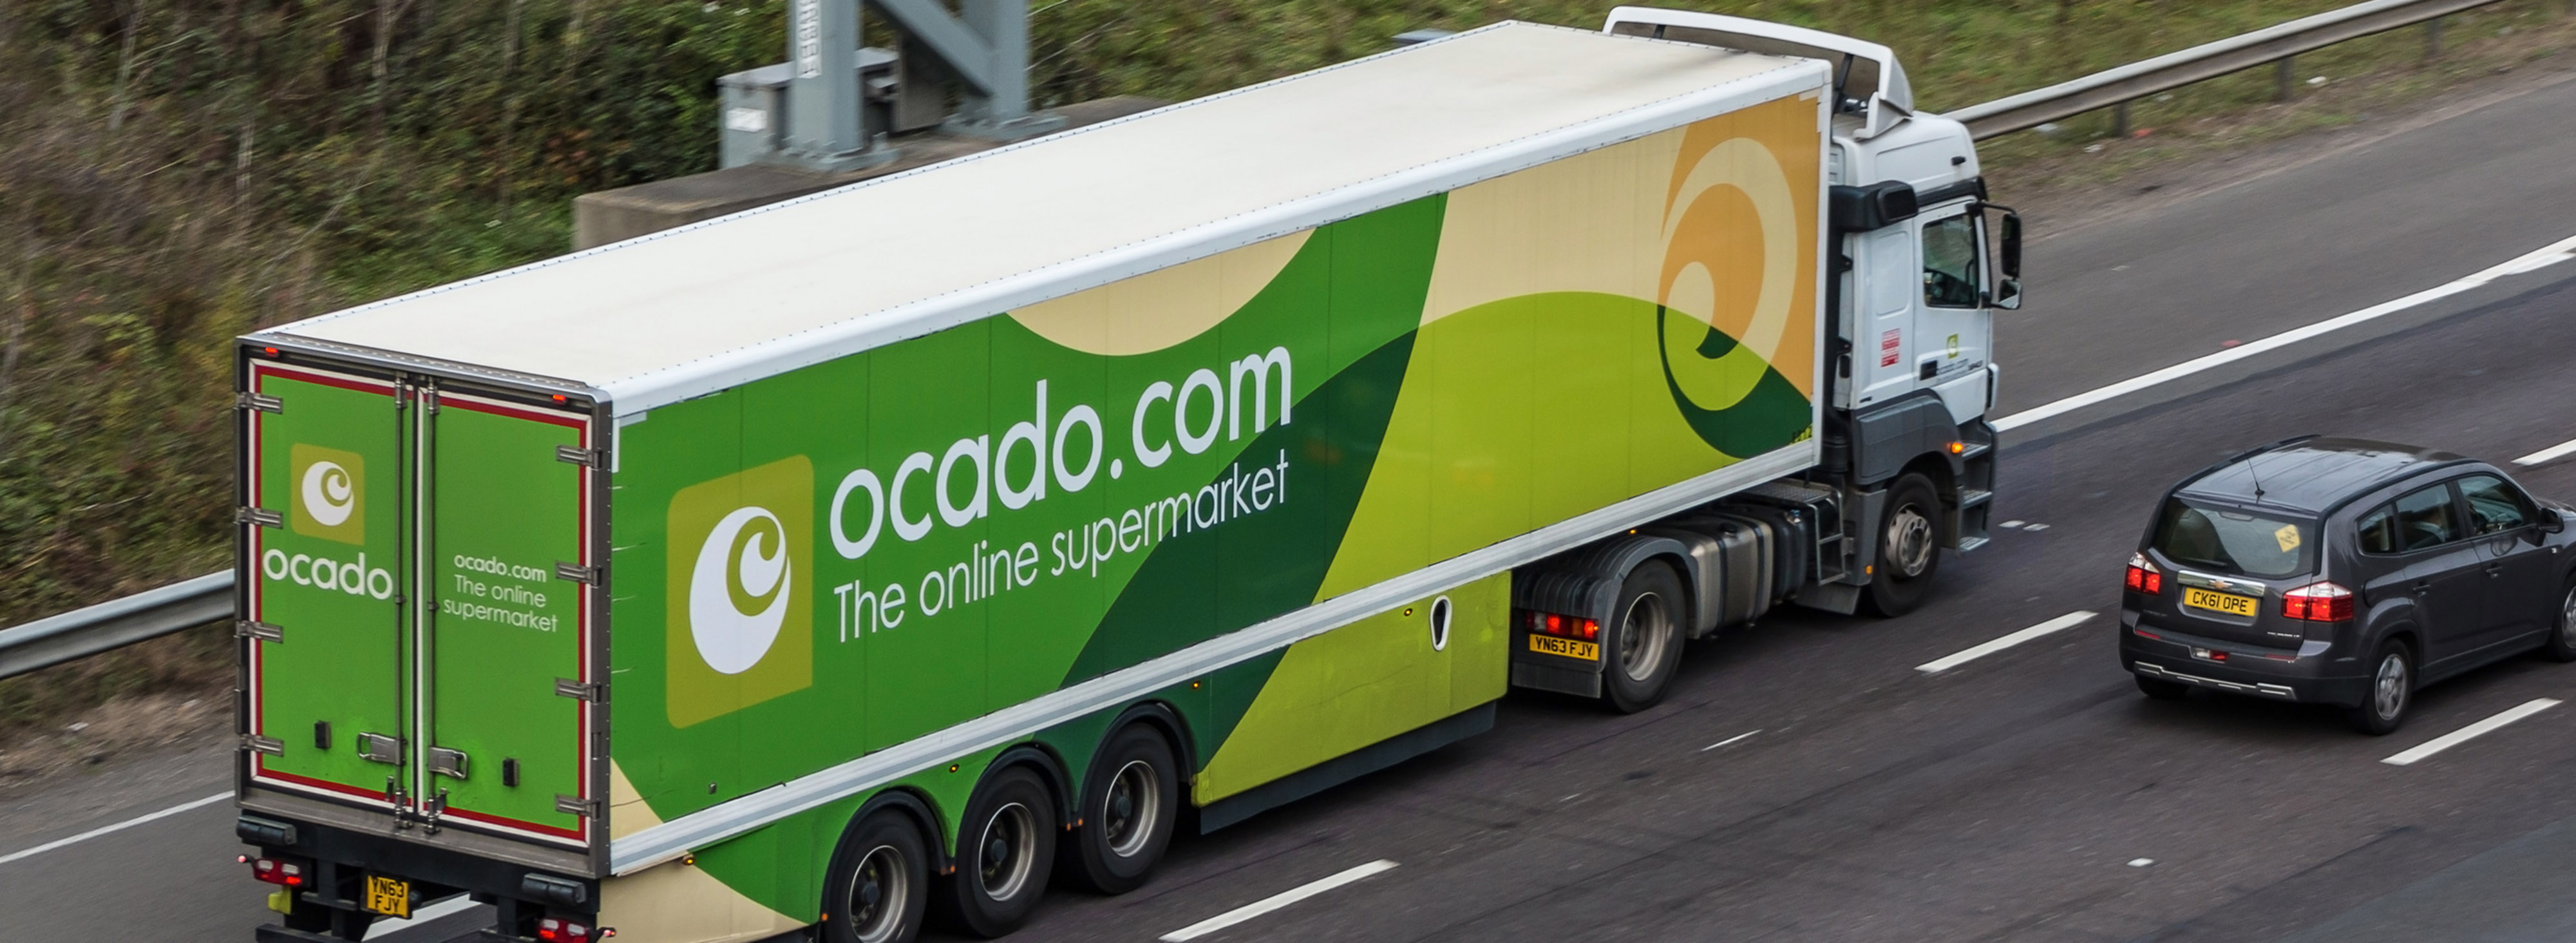 Ocado truck. Illustration